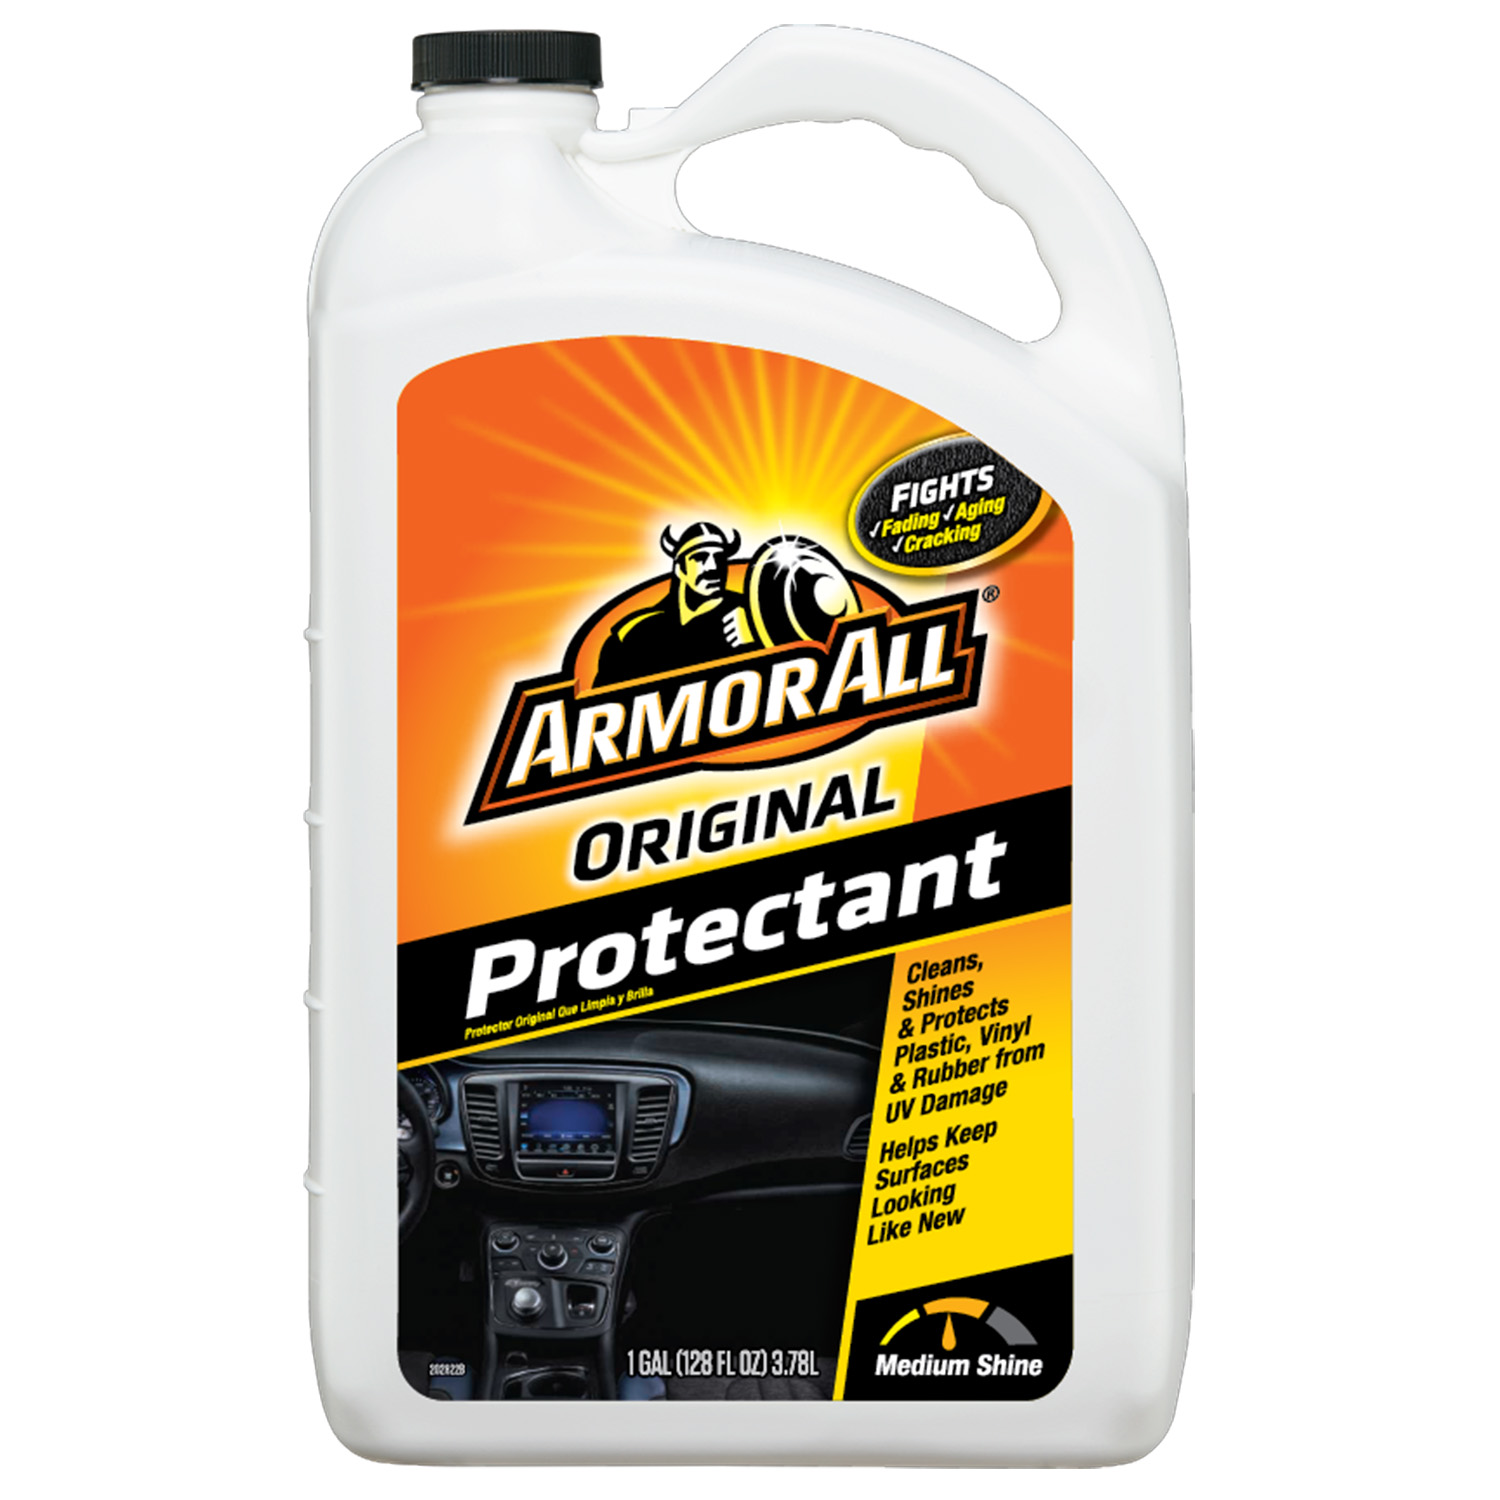 Armor All ARM 10710 Original Protectant, 1gal Bottle, 4/carton